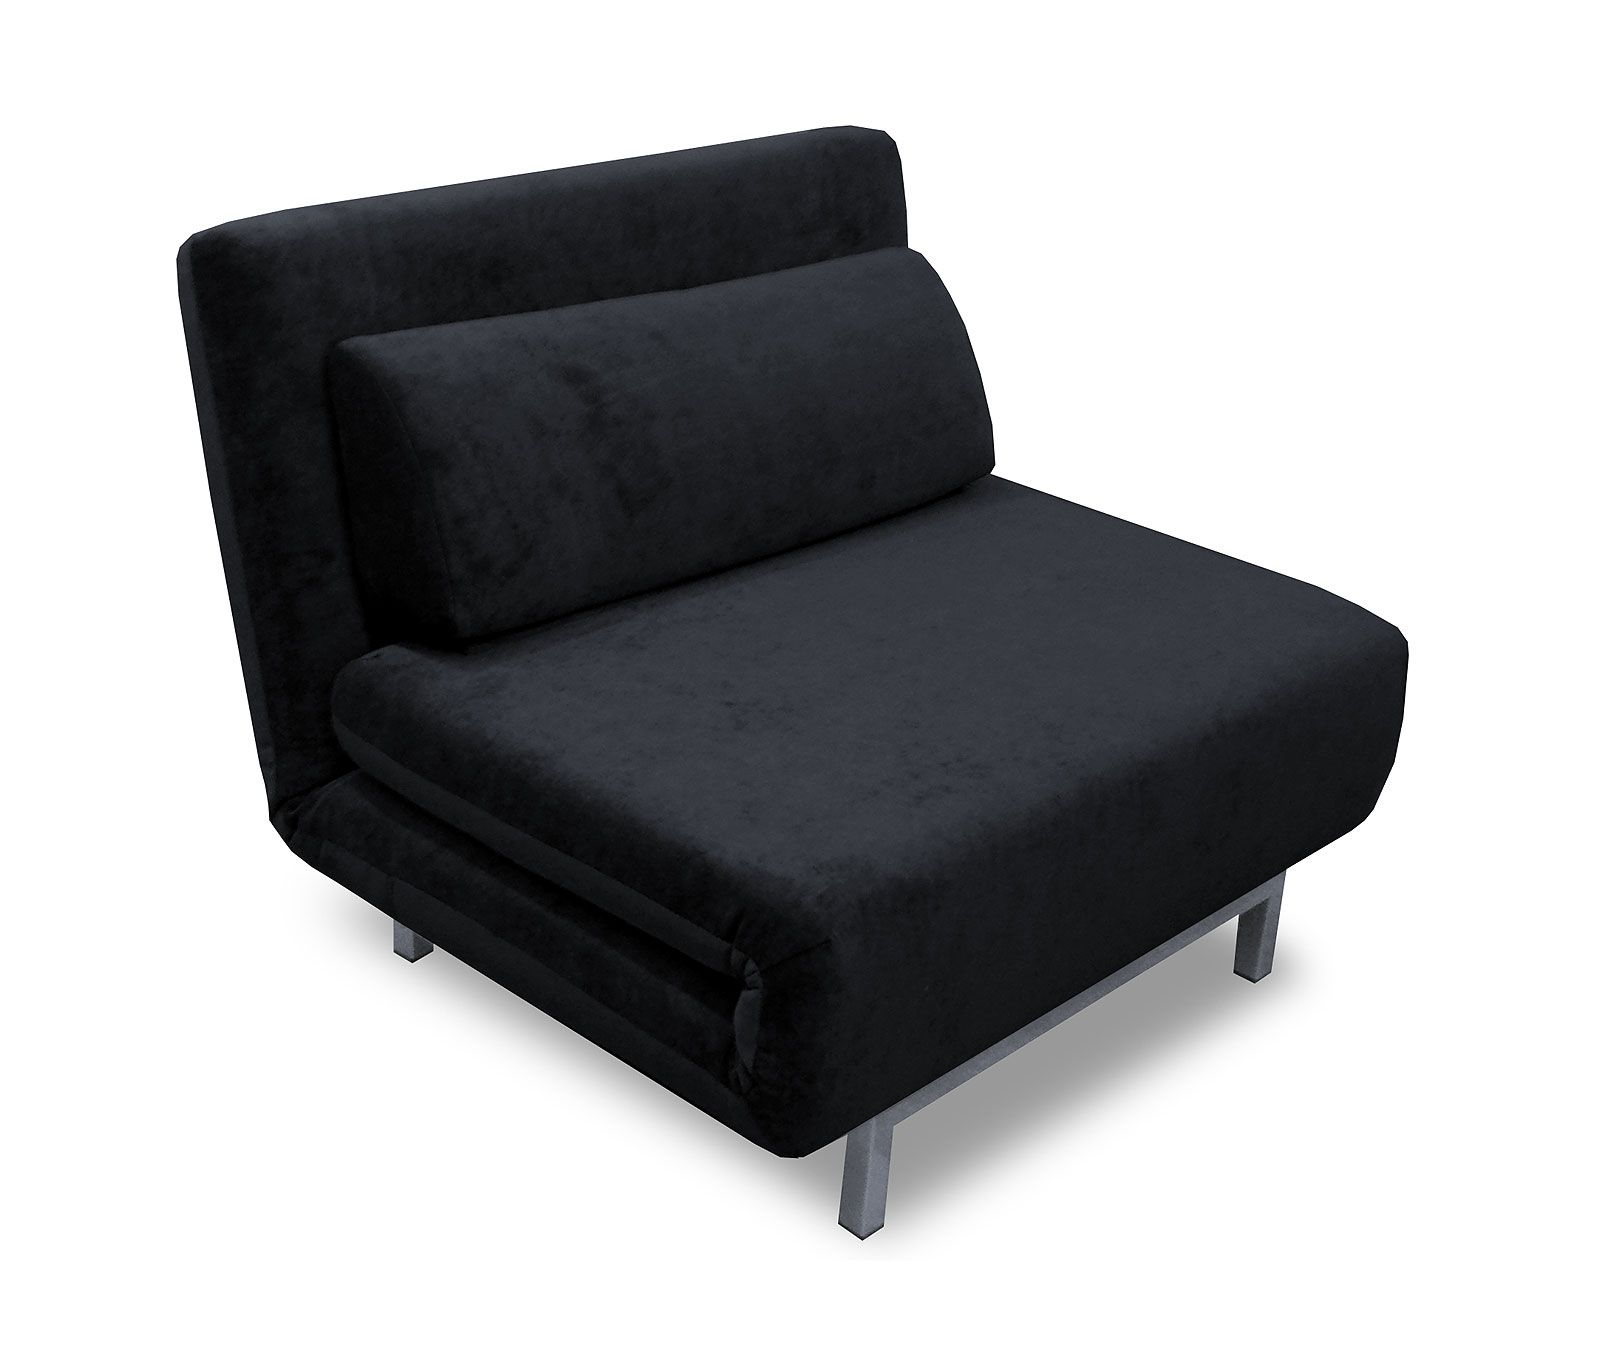 Trendy Black Fabric Chair Bed Without Arm And Chrome Finished Leg